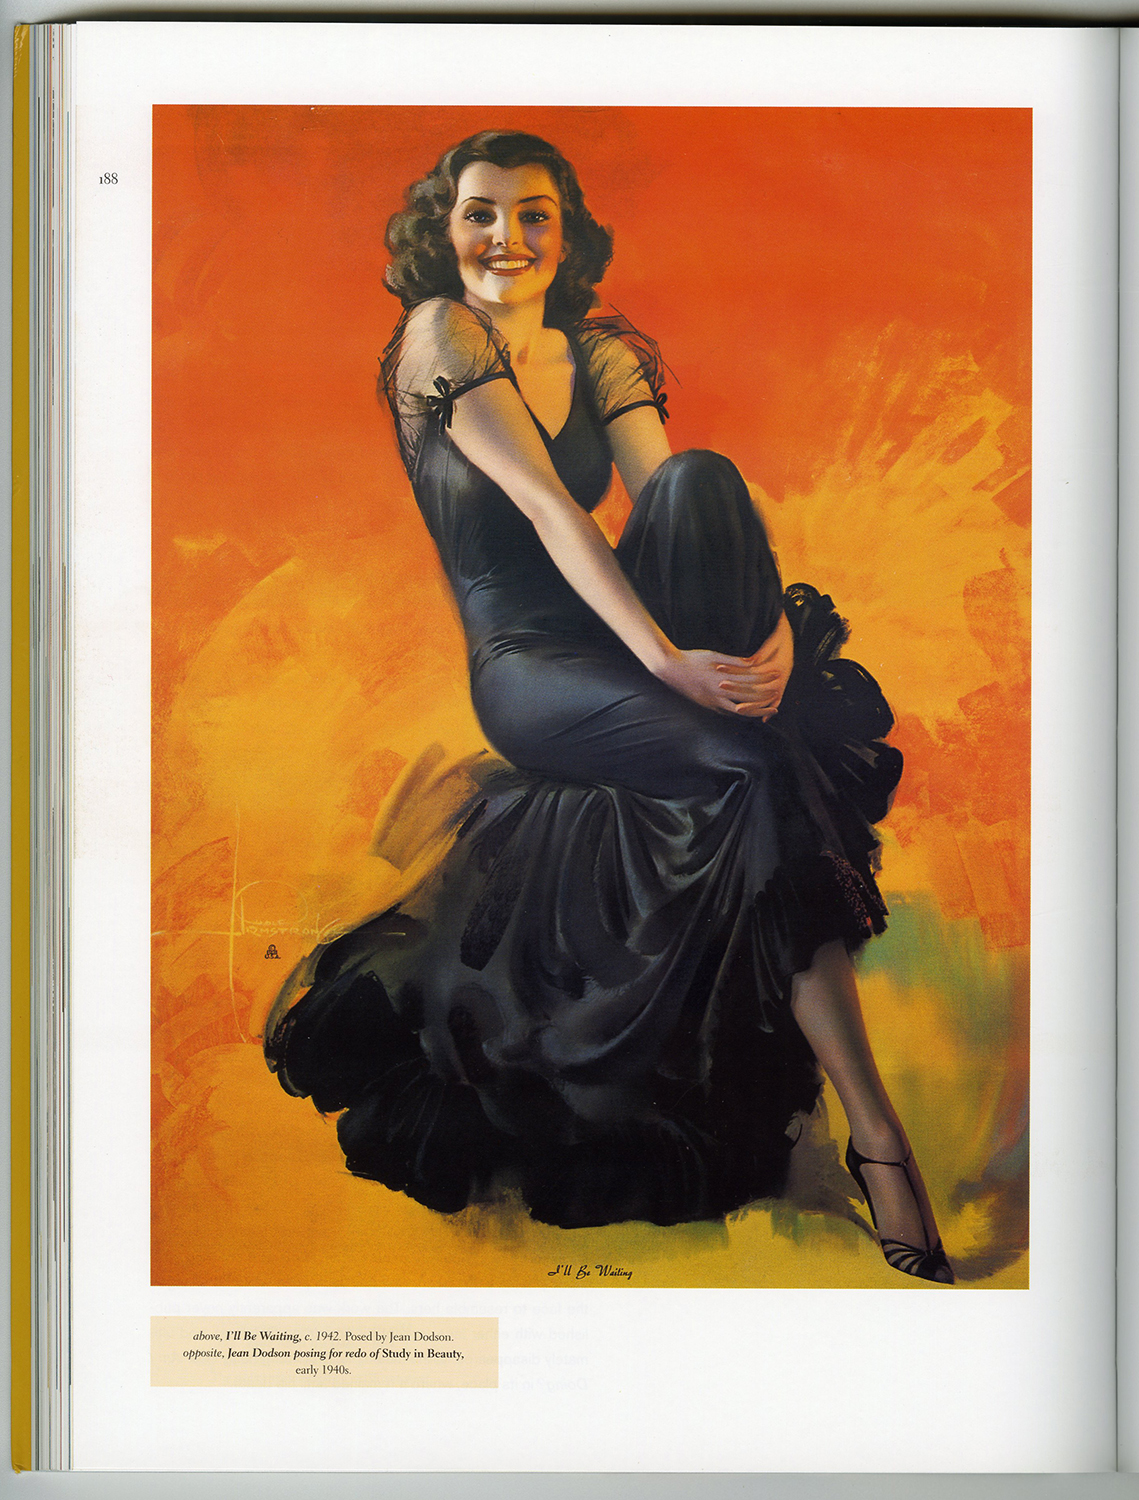 A full page color plate of the illustration as it appears on page 188 in Pin-Up Dreams: The Glamour Art of Rolf Armstrong